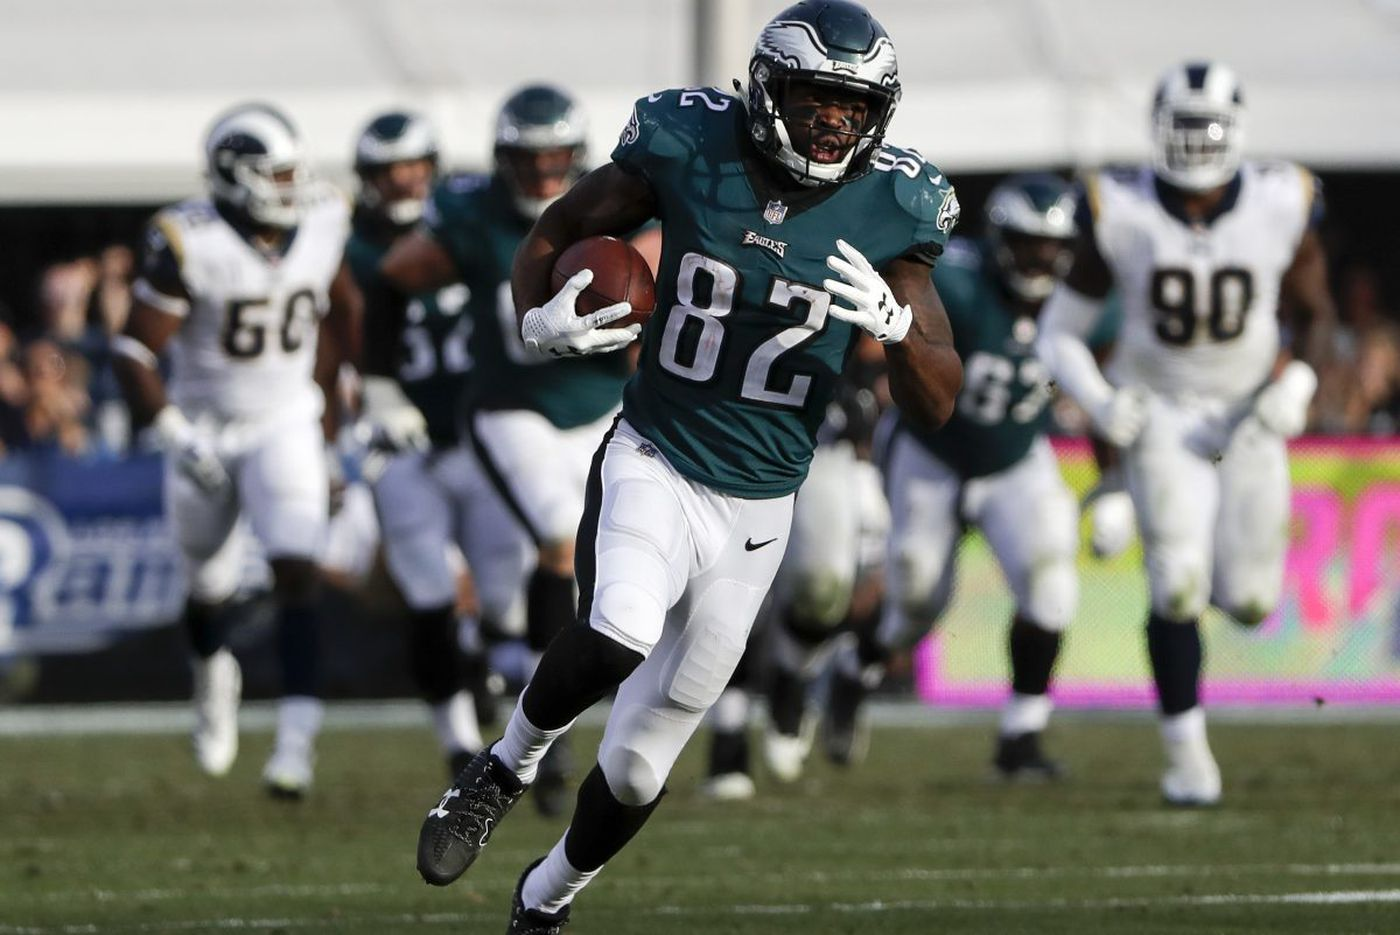 Playoff scenarios: What the Eagles need for the NFC's No. 1 seed